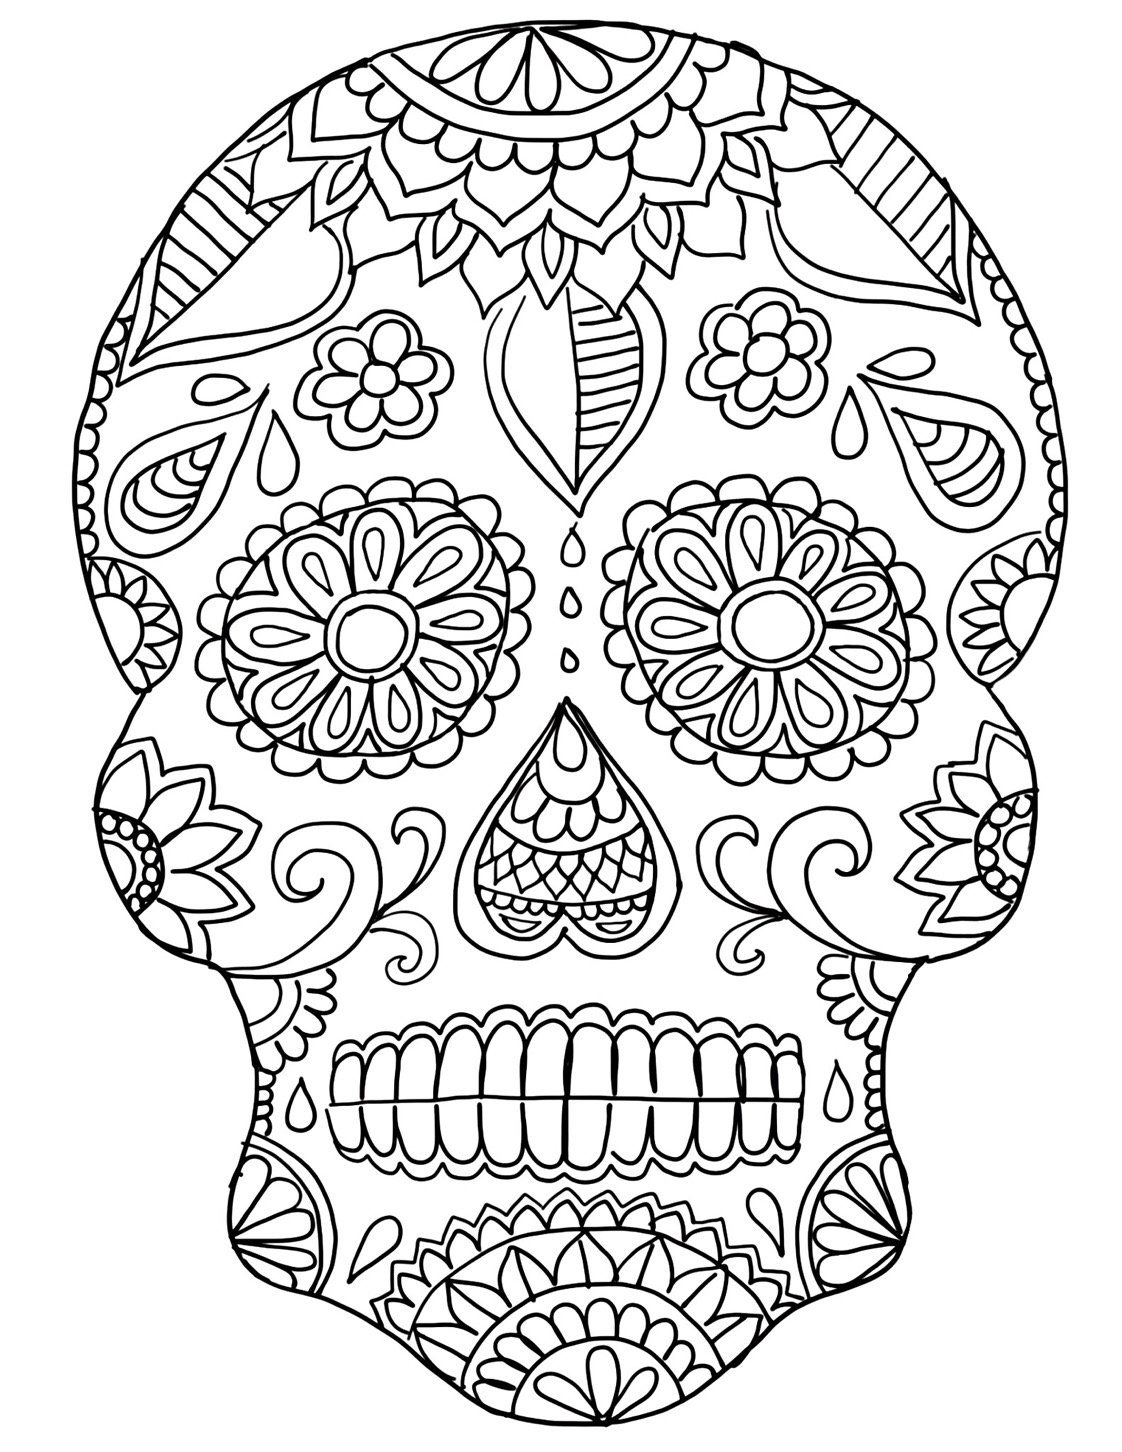 day of the dead pictures to color free printable day of the dead coloring pages best of pictures dead to the day color